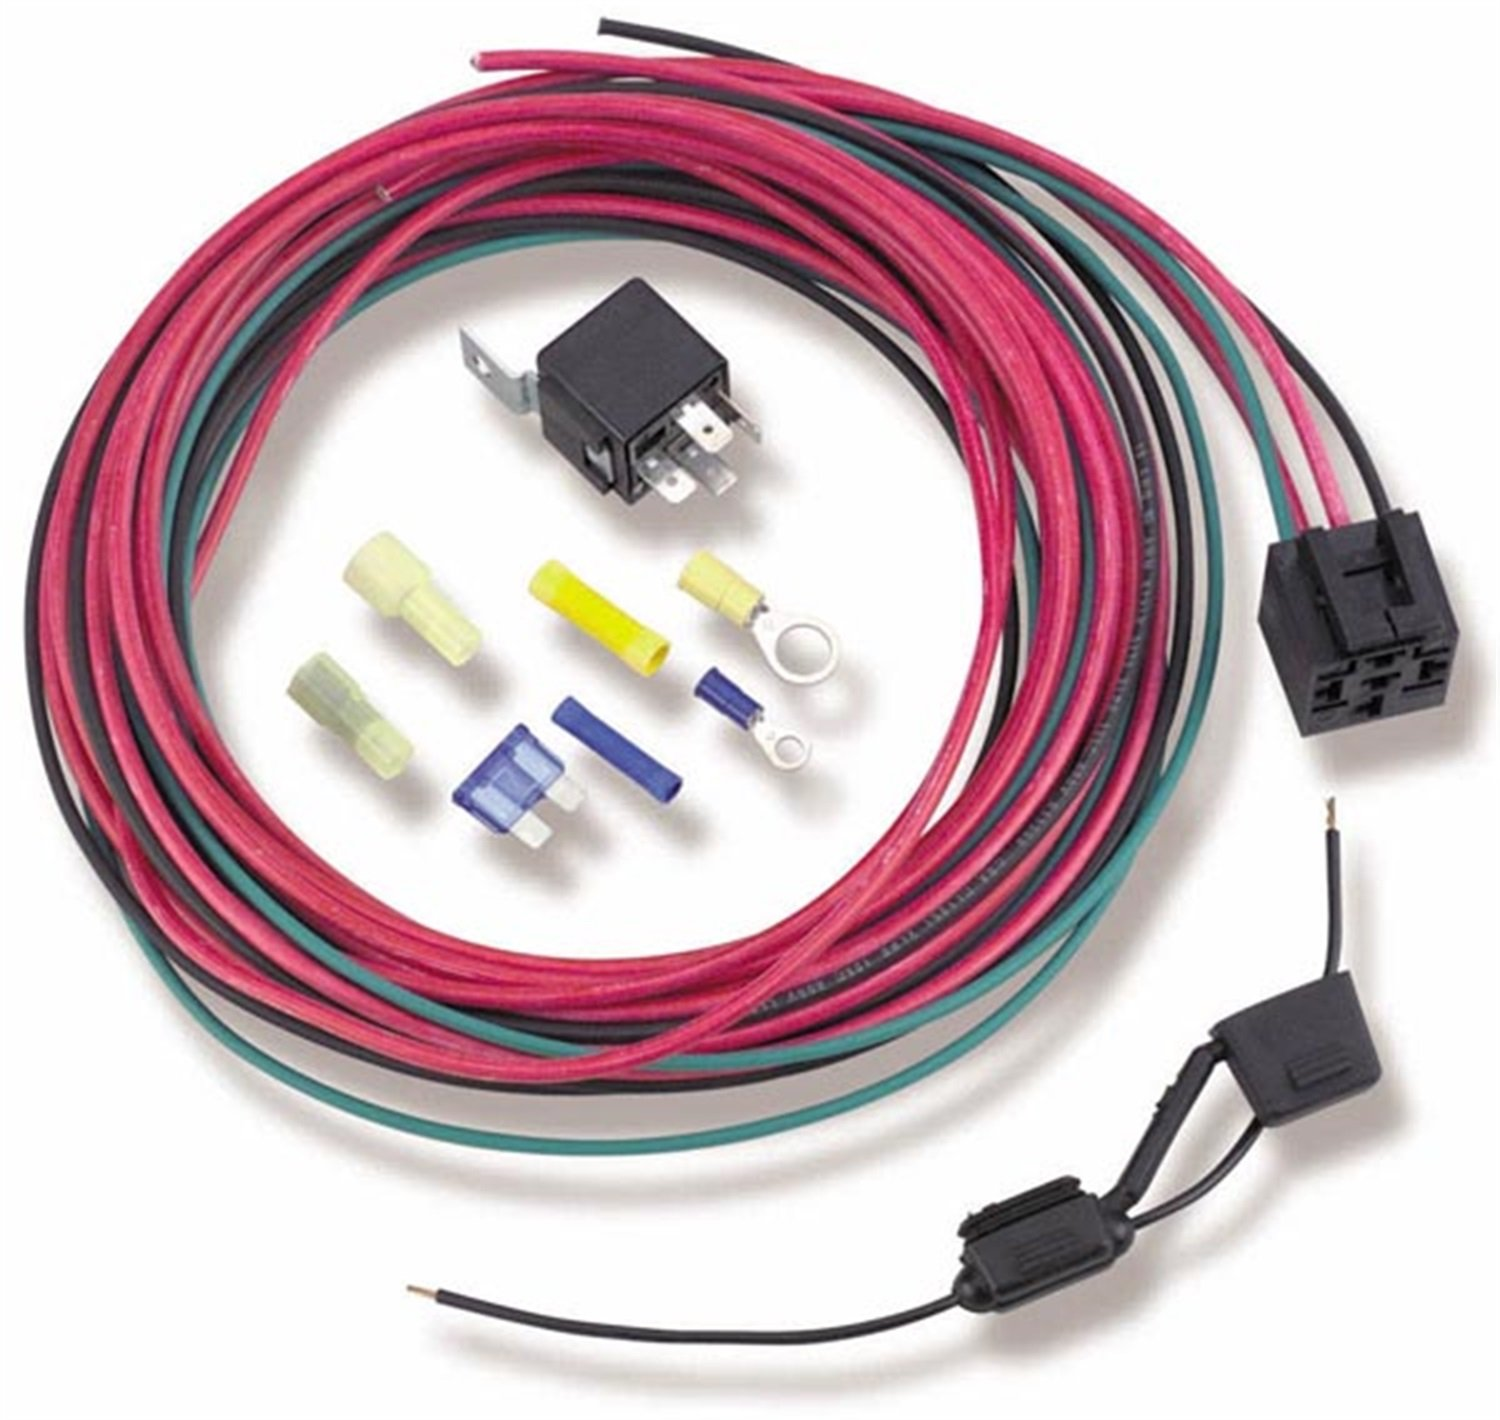 Holley 12-753 30 Amp Fuel Pump Relay Kit by Holley